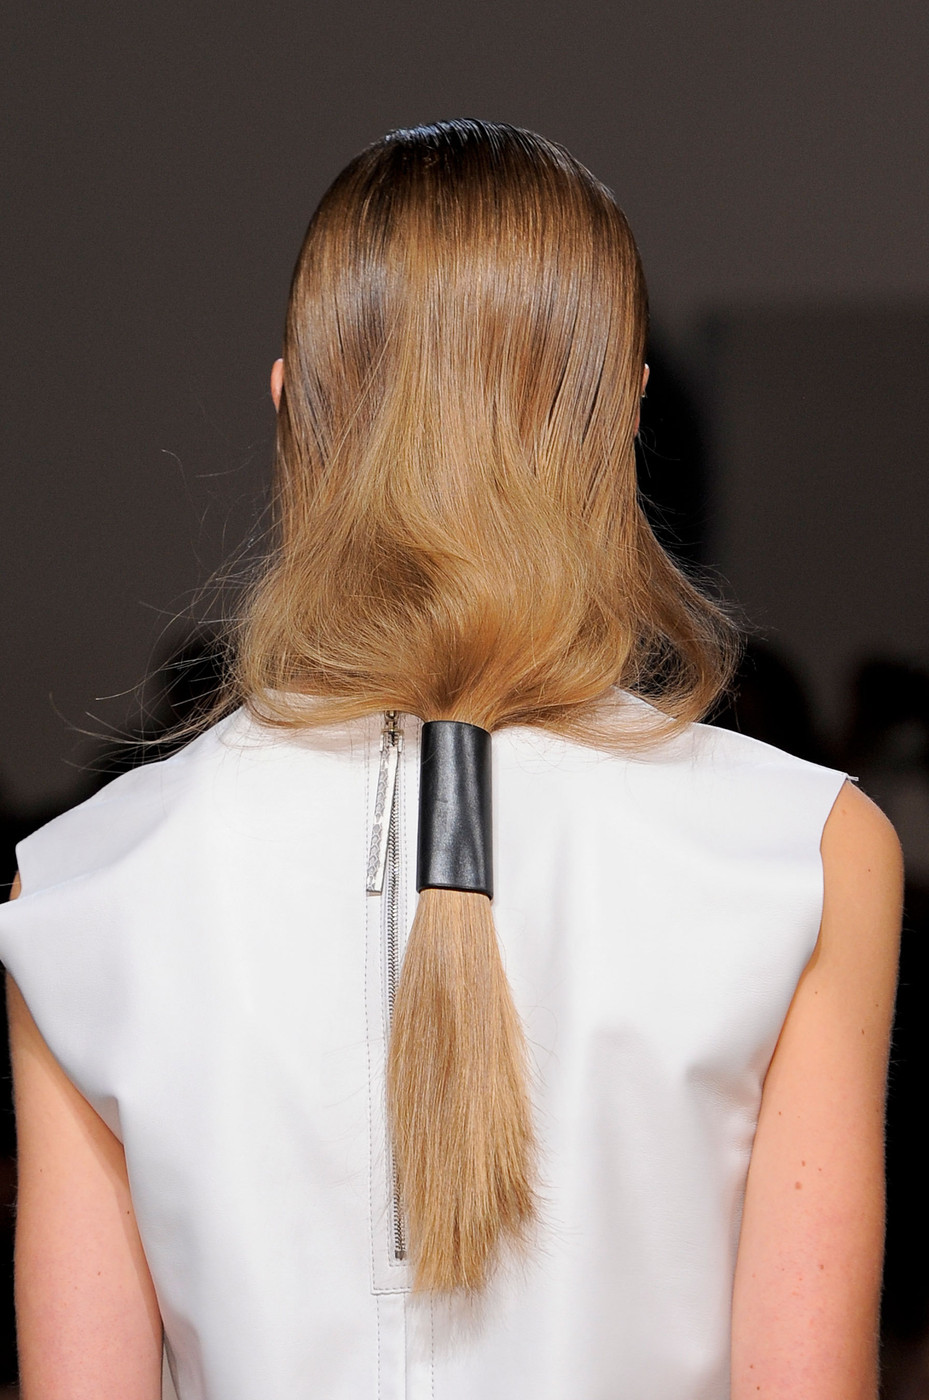 Hair Trend Report  Leather Hair Accessories - Hair Trend Report ... 4f075d6042a